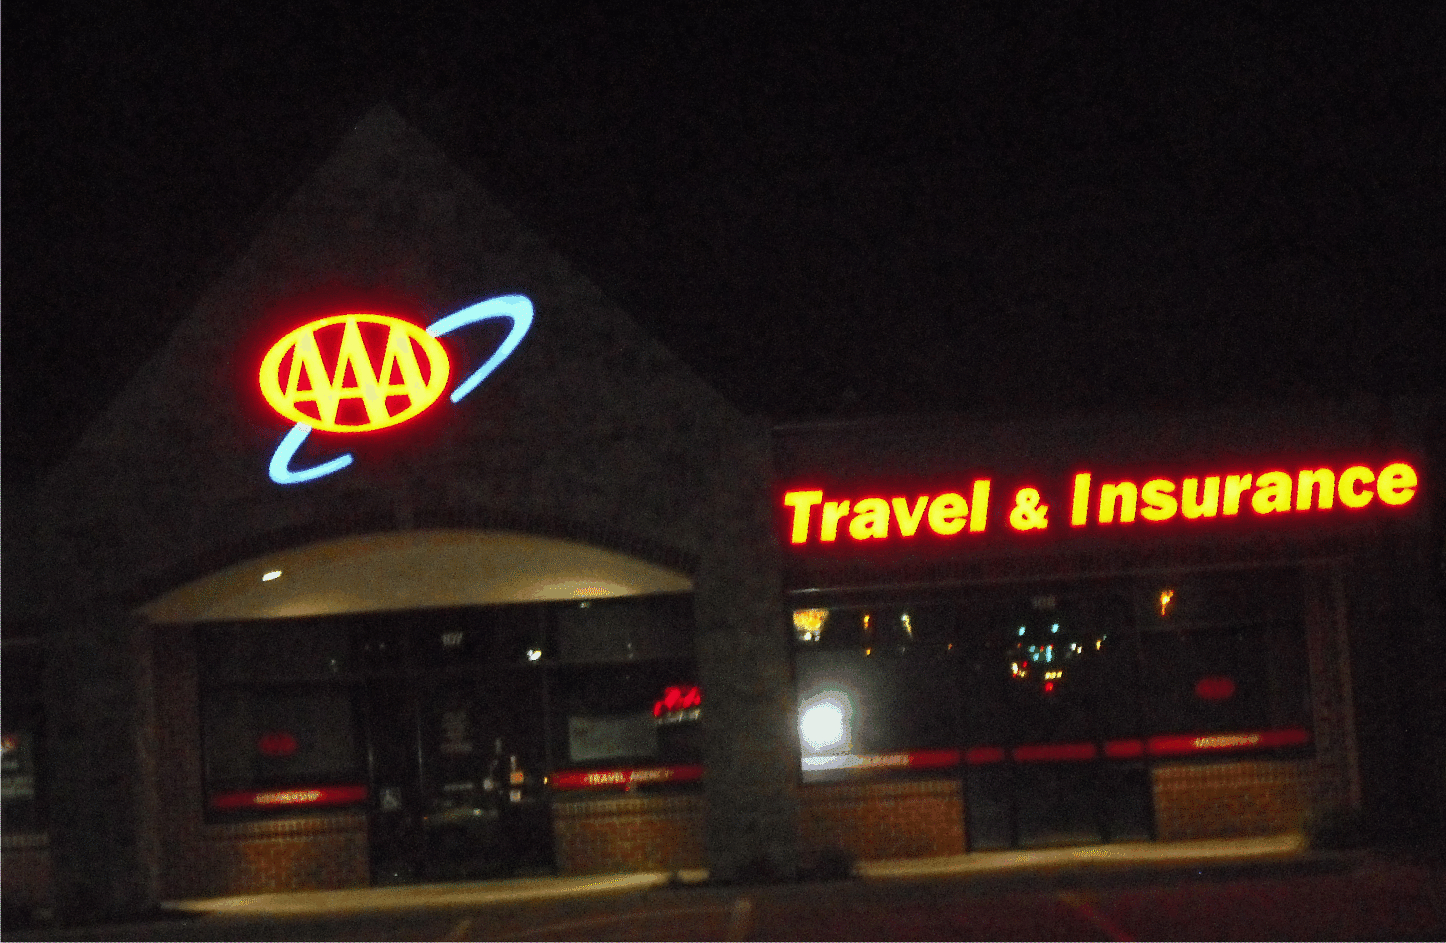 Led Vs Neon Signs Signworks Omaha Exterior And Interior Business Signage